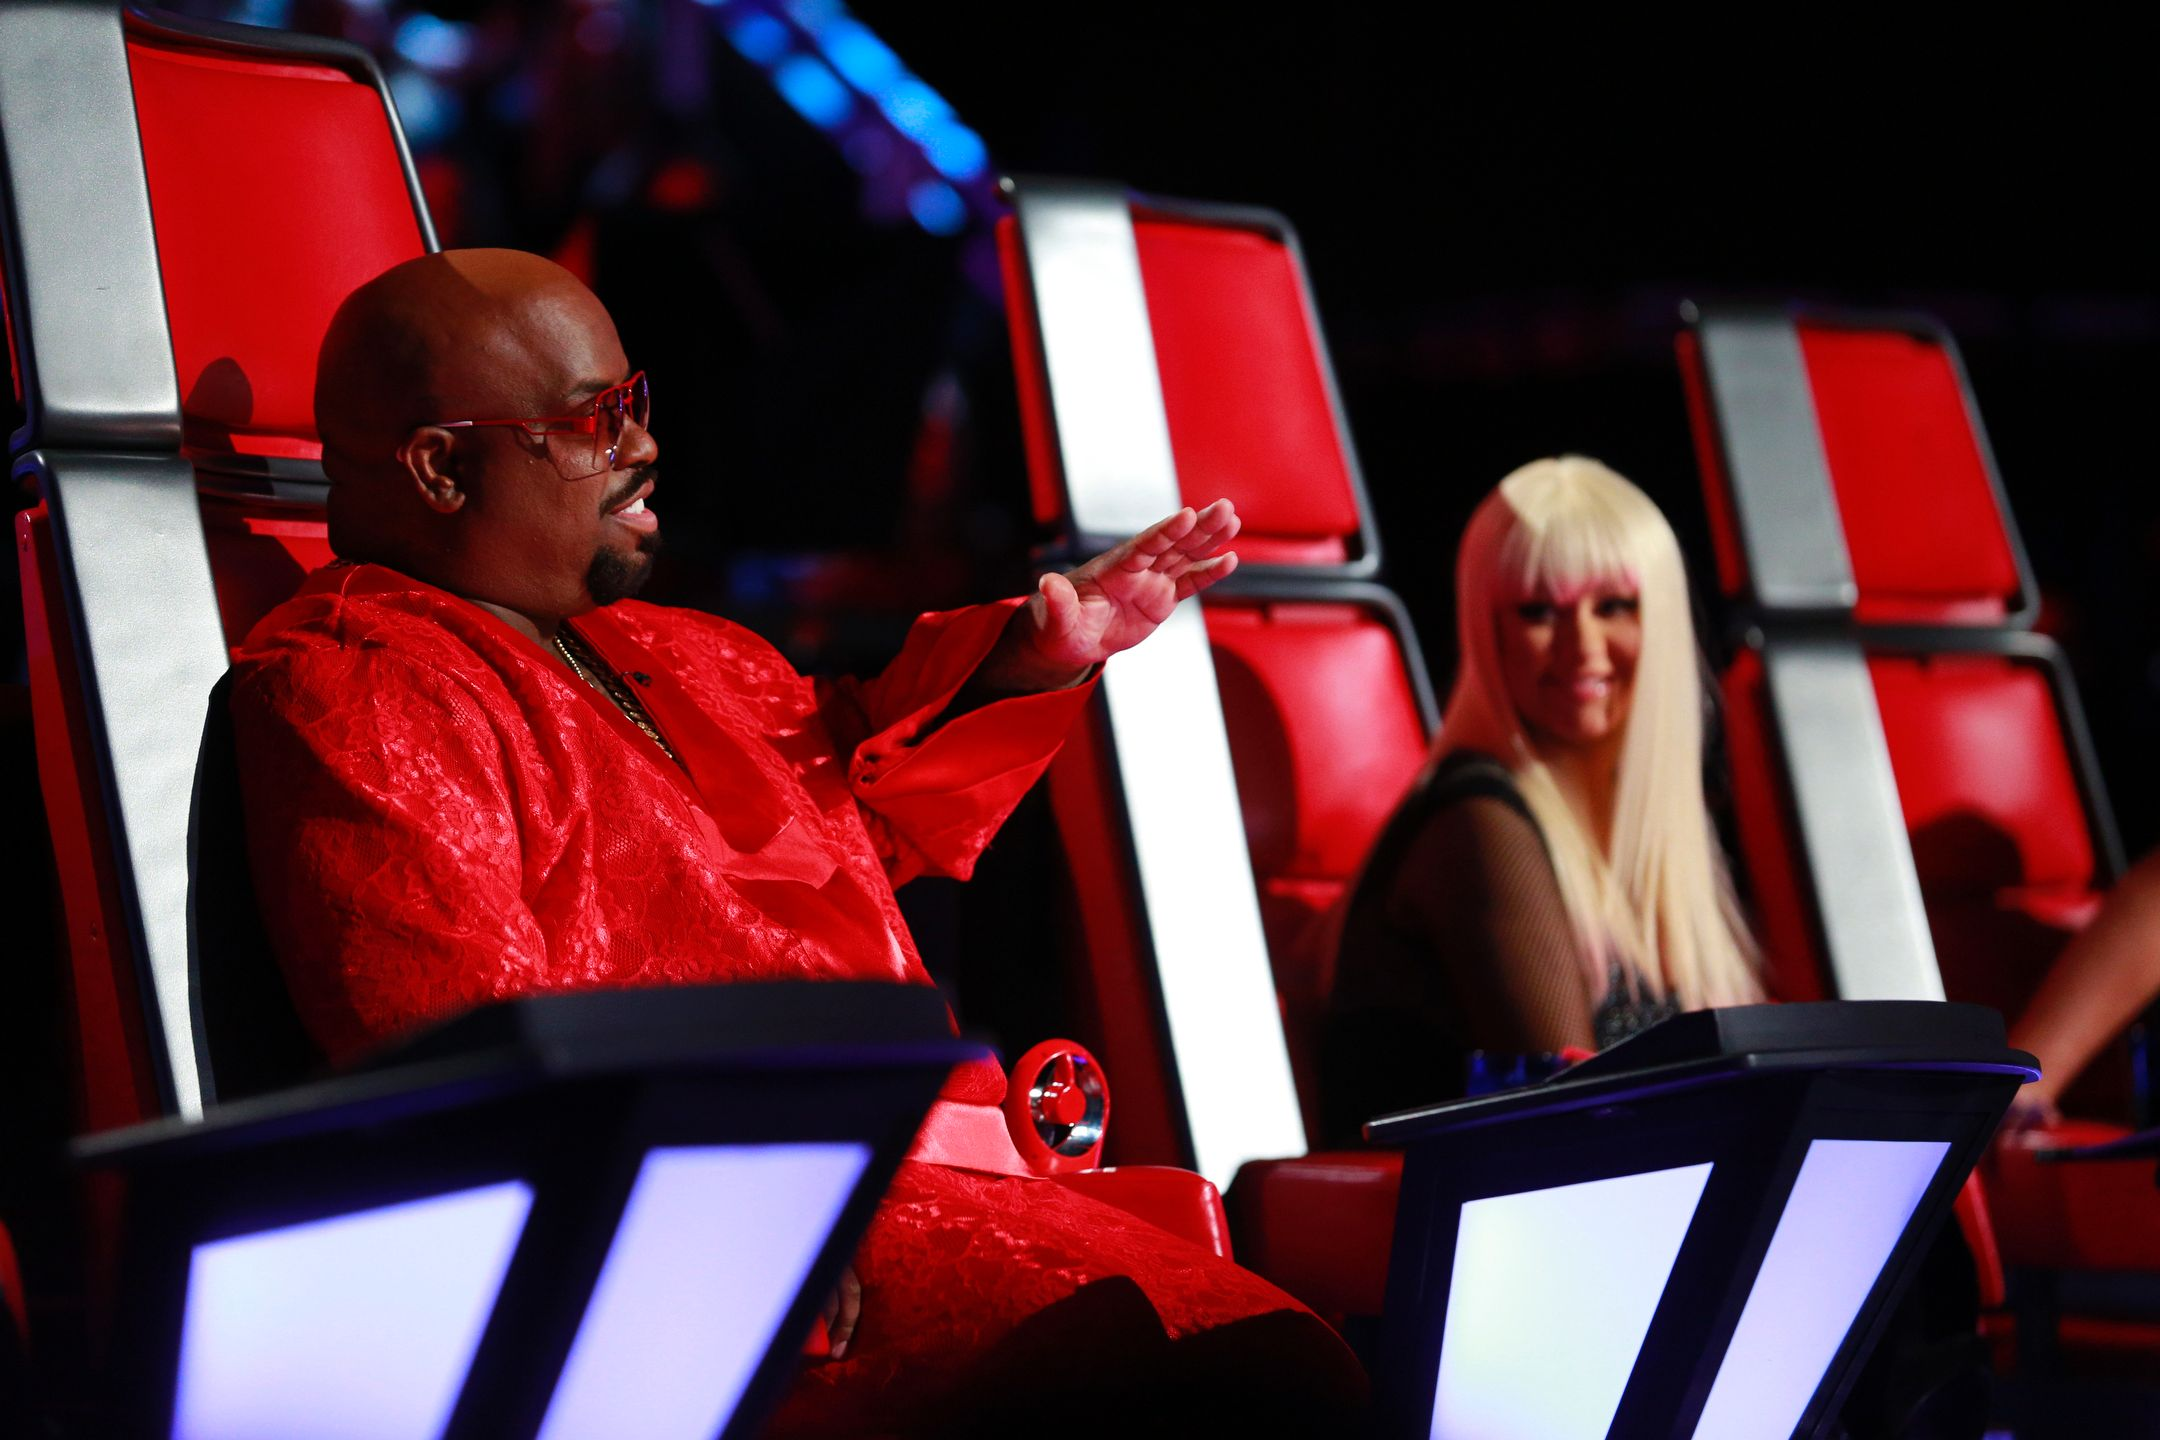 Cee Lo Green photo #452997